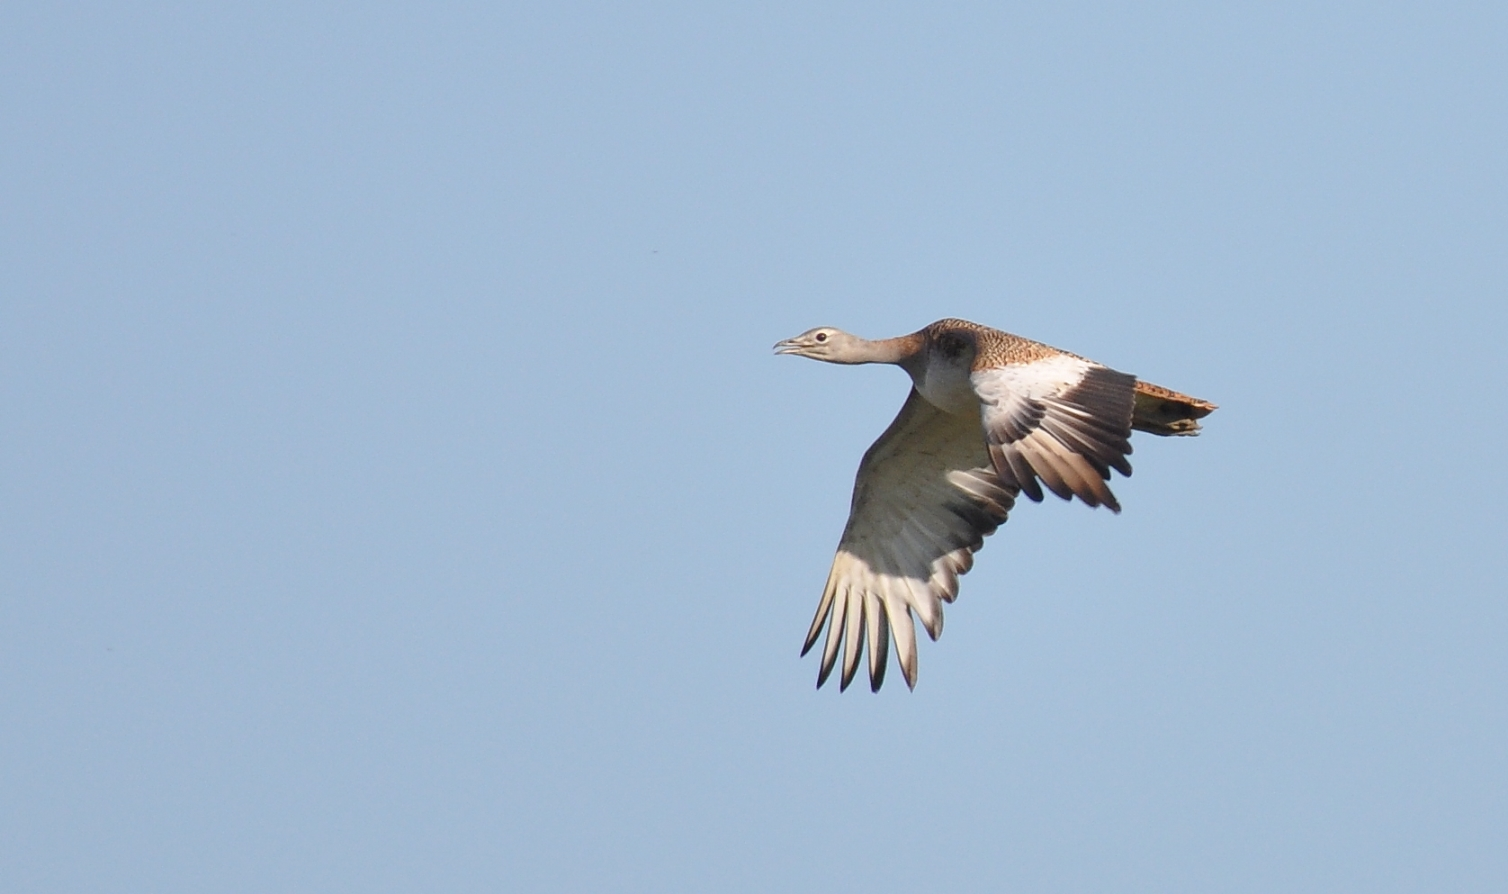 Great Bustard (Otis tarda), northern Morocco, 10 March 2015 (Rachid El Khamlichi)